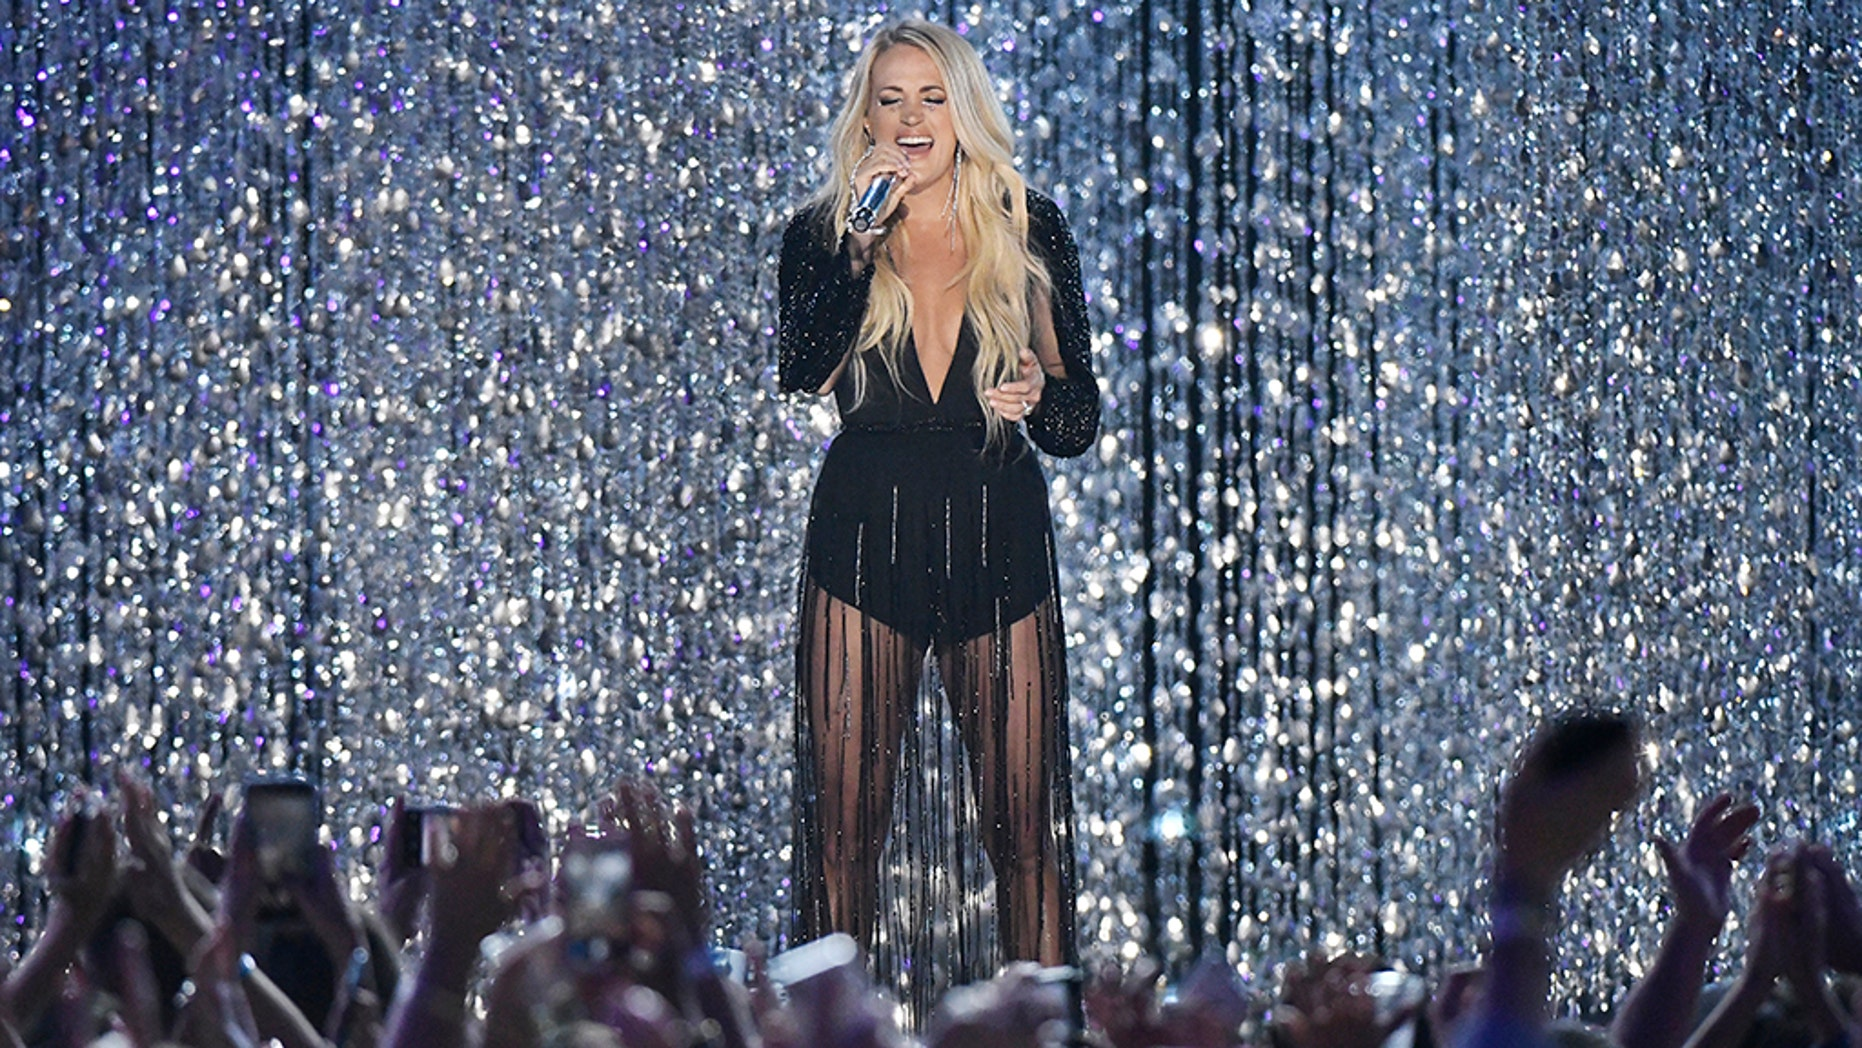 Carrie Underwood is slated to perform at the 2018 American Music Awards.